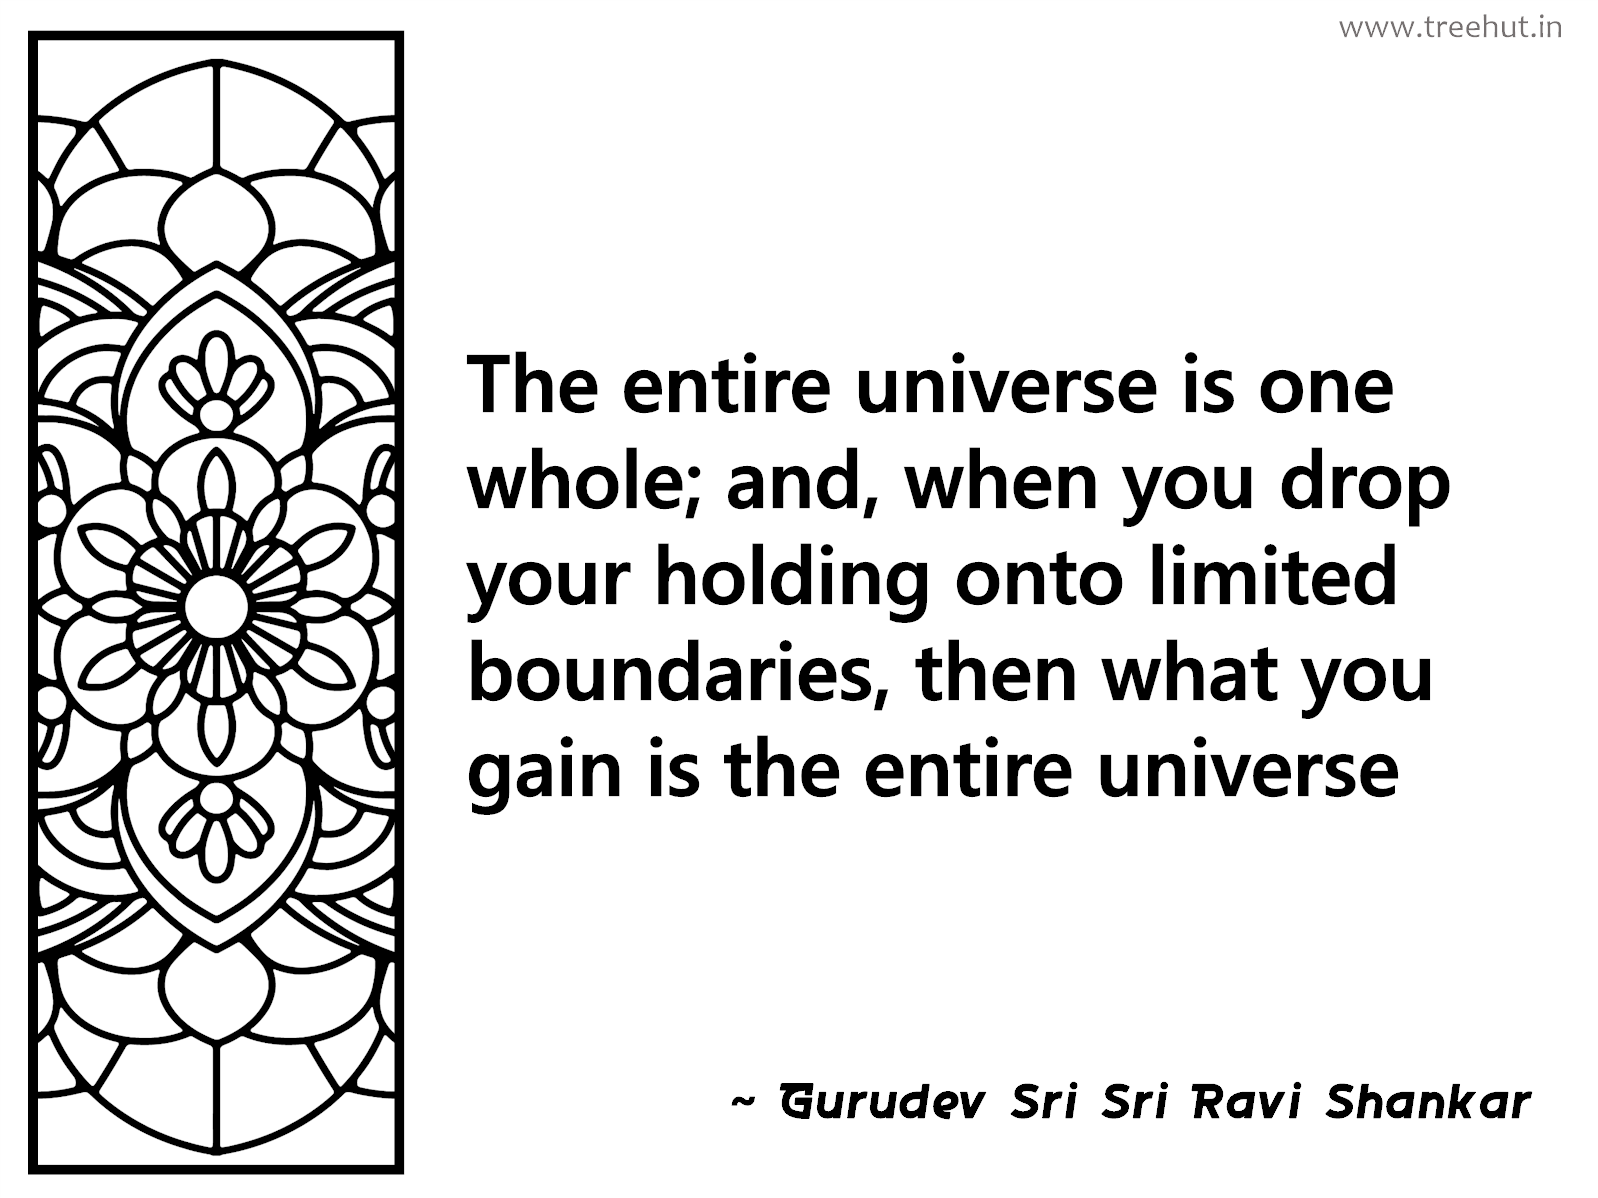 The entire universe is one whole; and, when you drop your holding onto limited boundaries, then what you gain is the entire universe Inspirational Quote by Gurudev Sri Sri Ravi Shankar, coloring pages